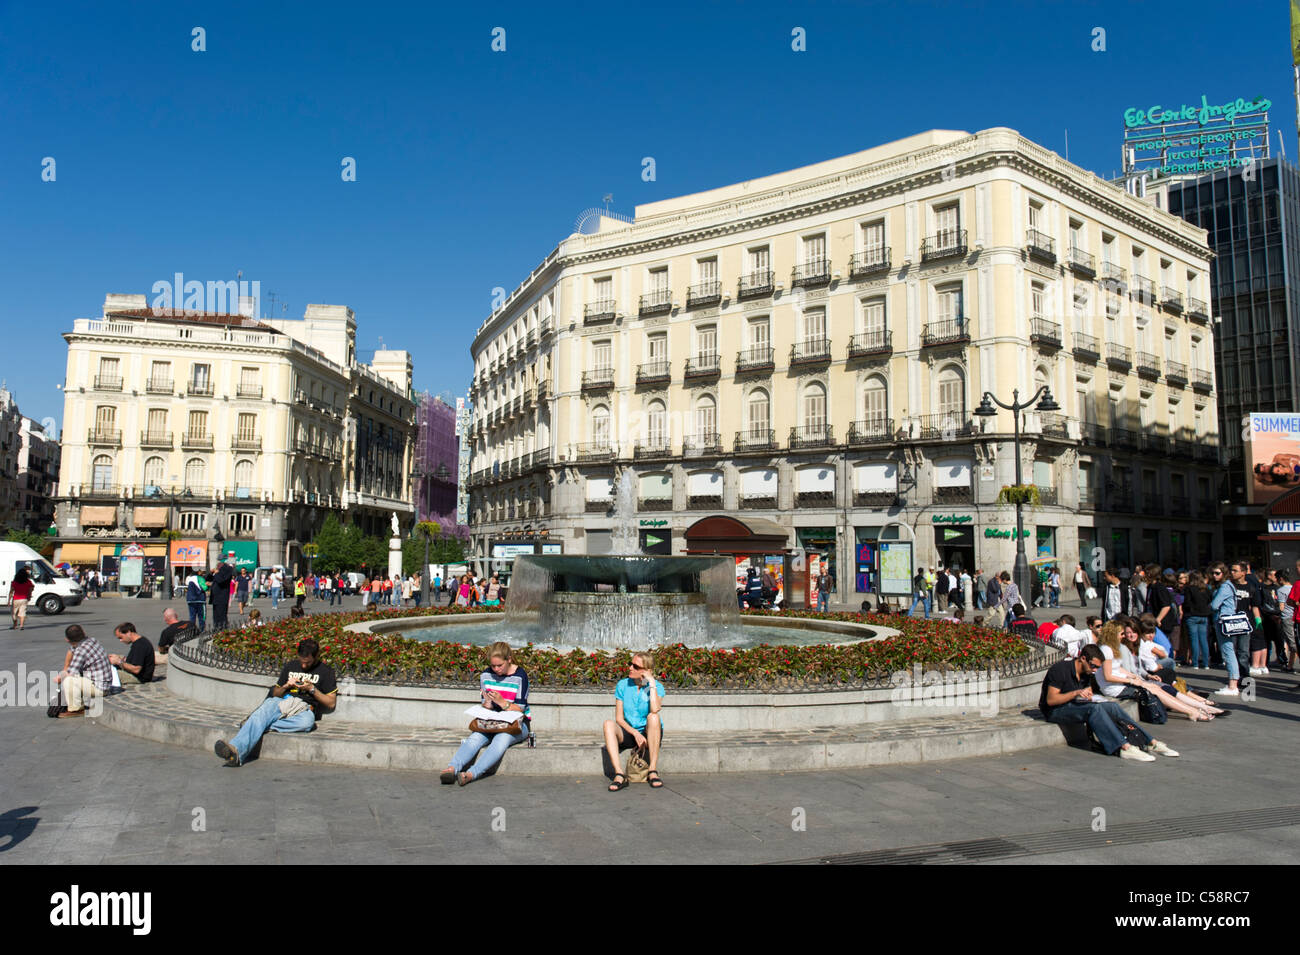 Plaza puerta del sol madrid spain stock photo royalty for Plaza del sol madrid